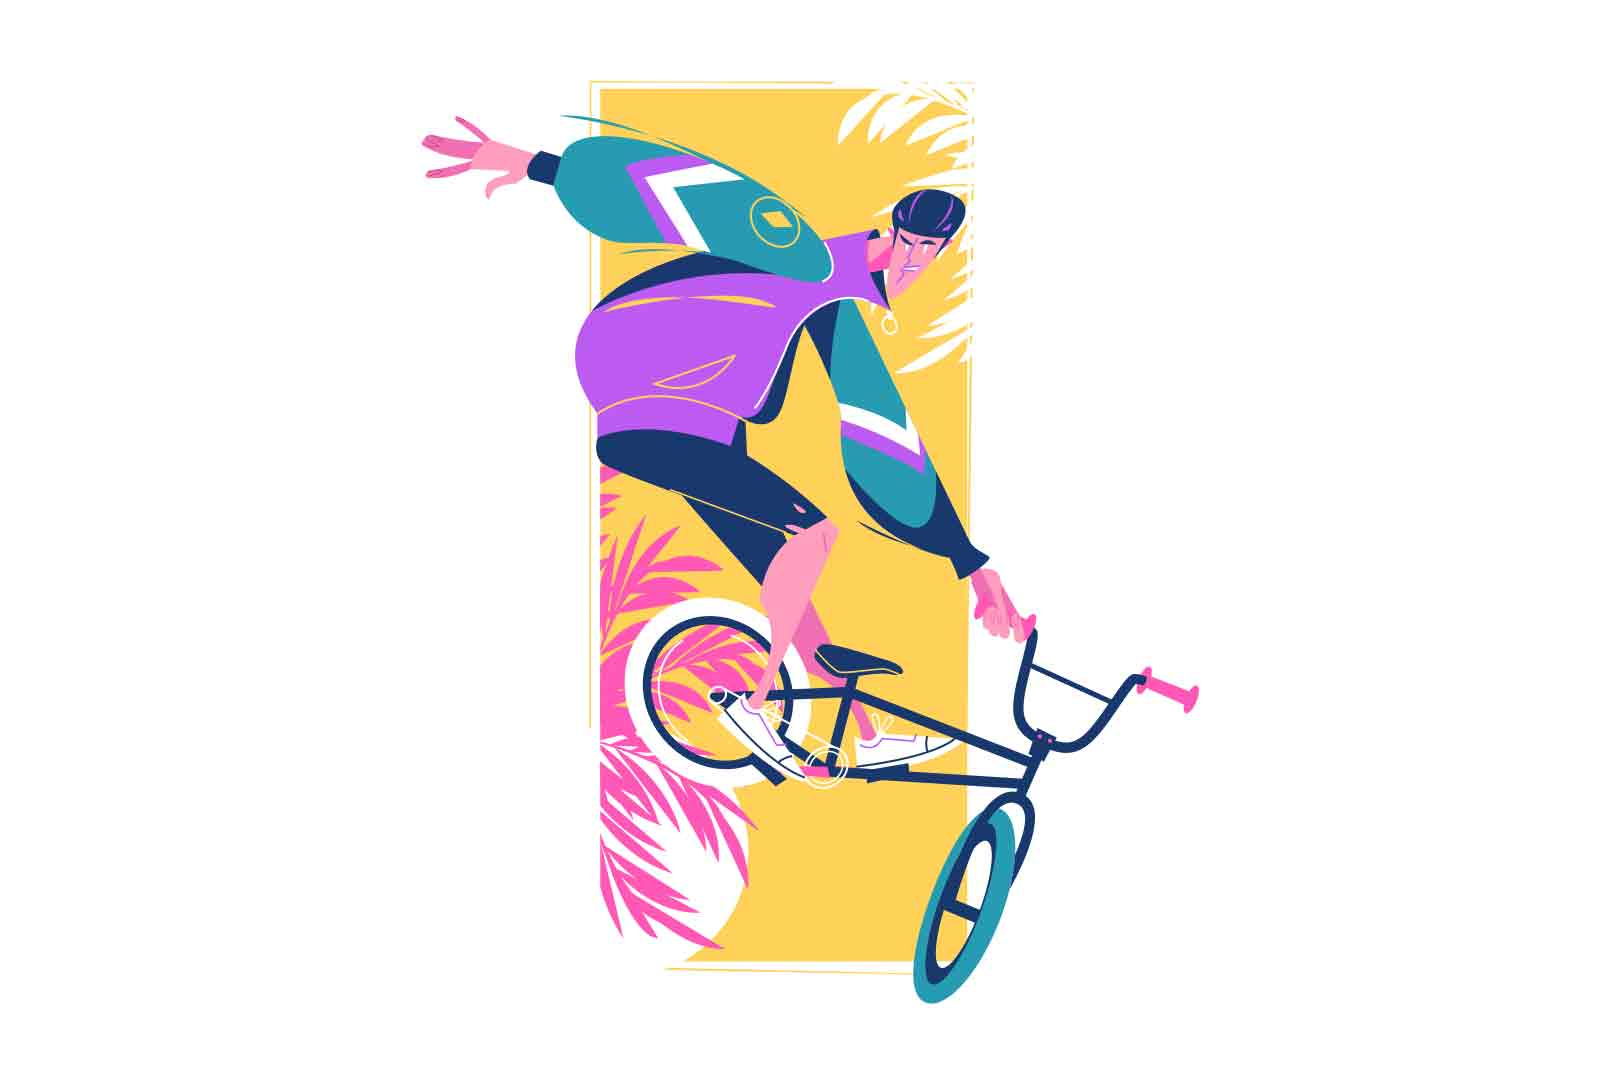 Young guy bmx freestyle sportsman vector illustration. Man ride bicycle and perform tricks flat style. Sport, hobby, extreme cycling concept